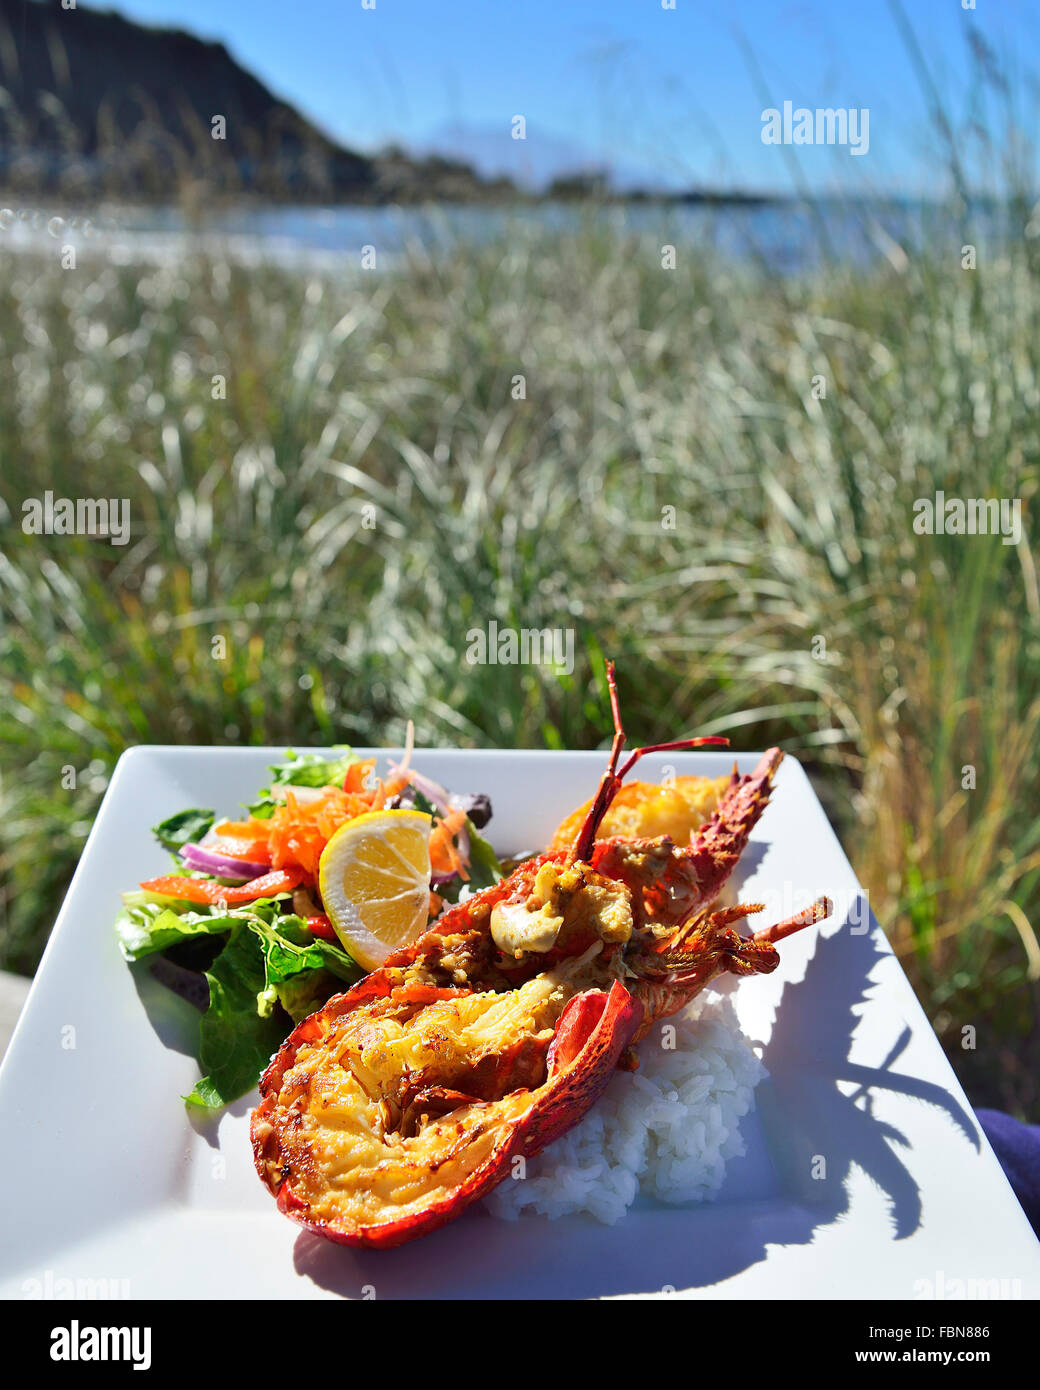 Crayfish ( Lobster) dish served al fresco eating at a road side fish cookery Kaikoura South island New Zealand - Stock Image